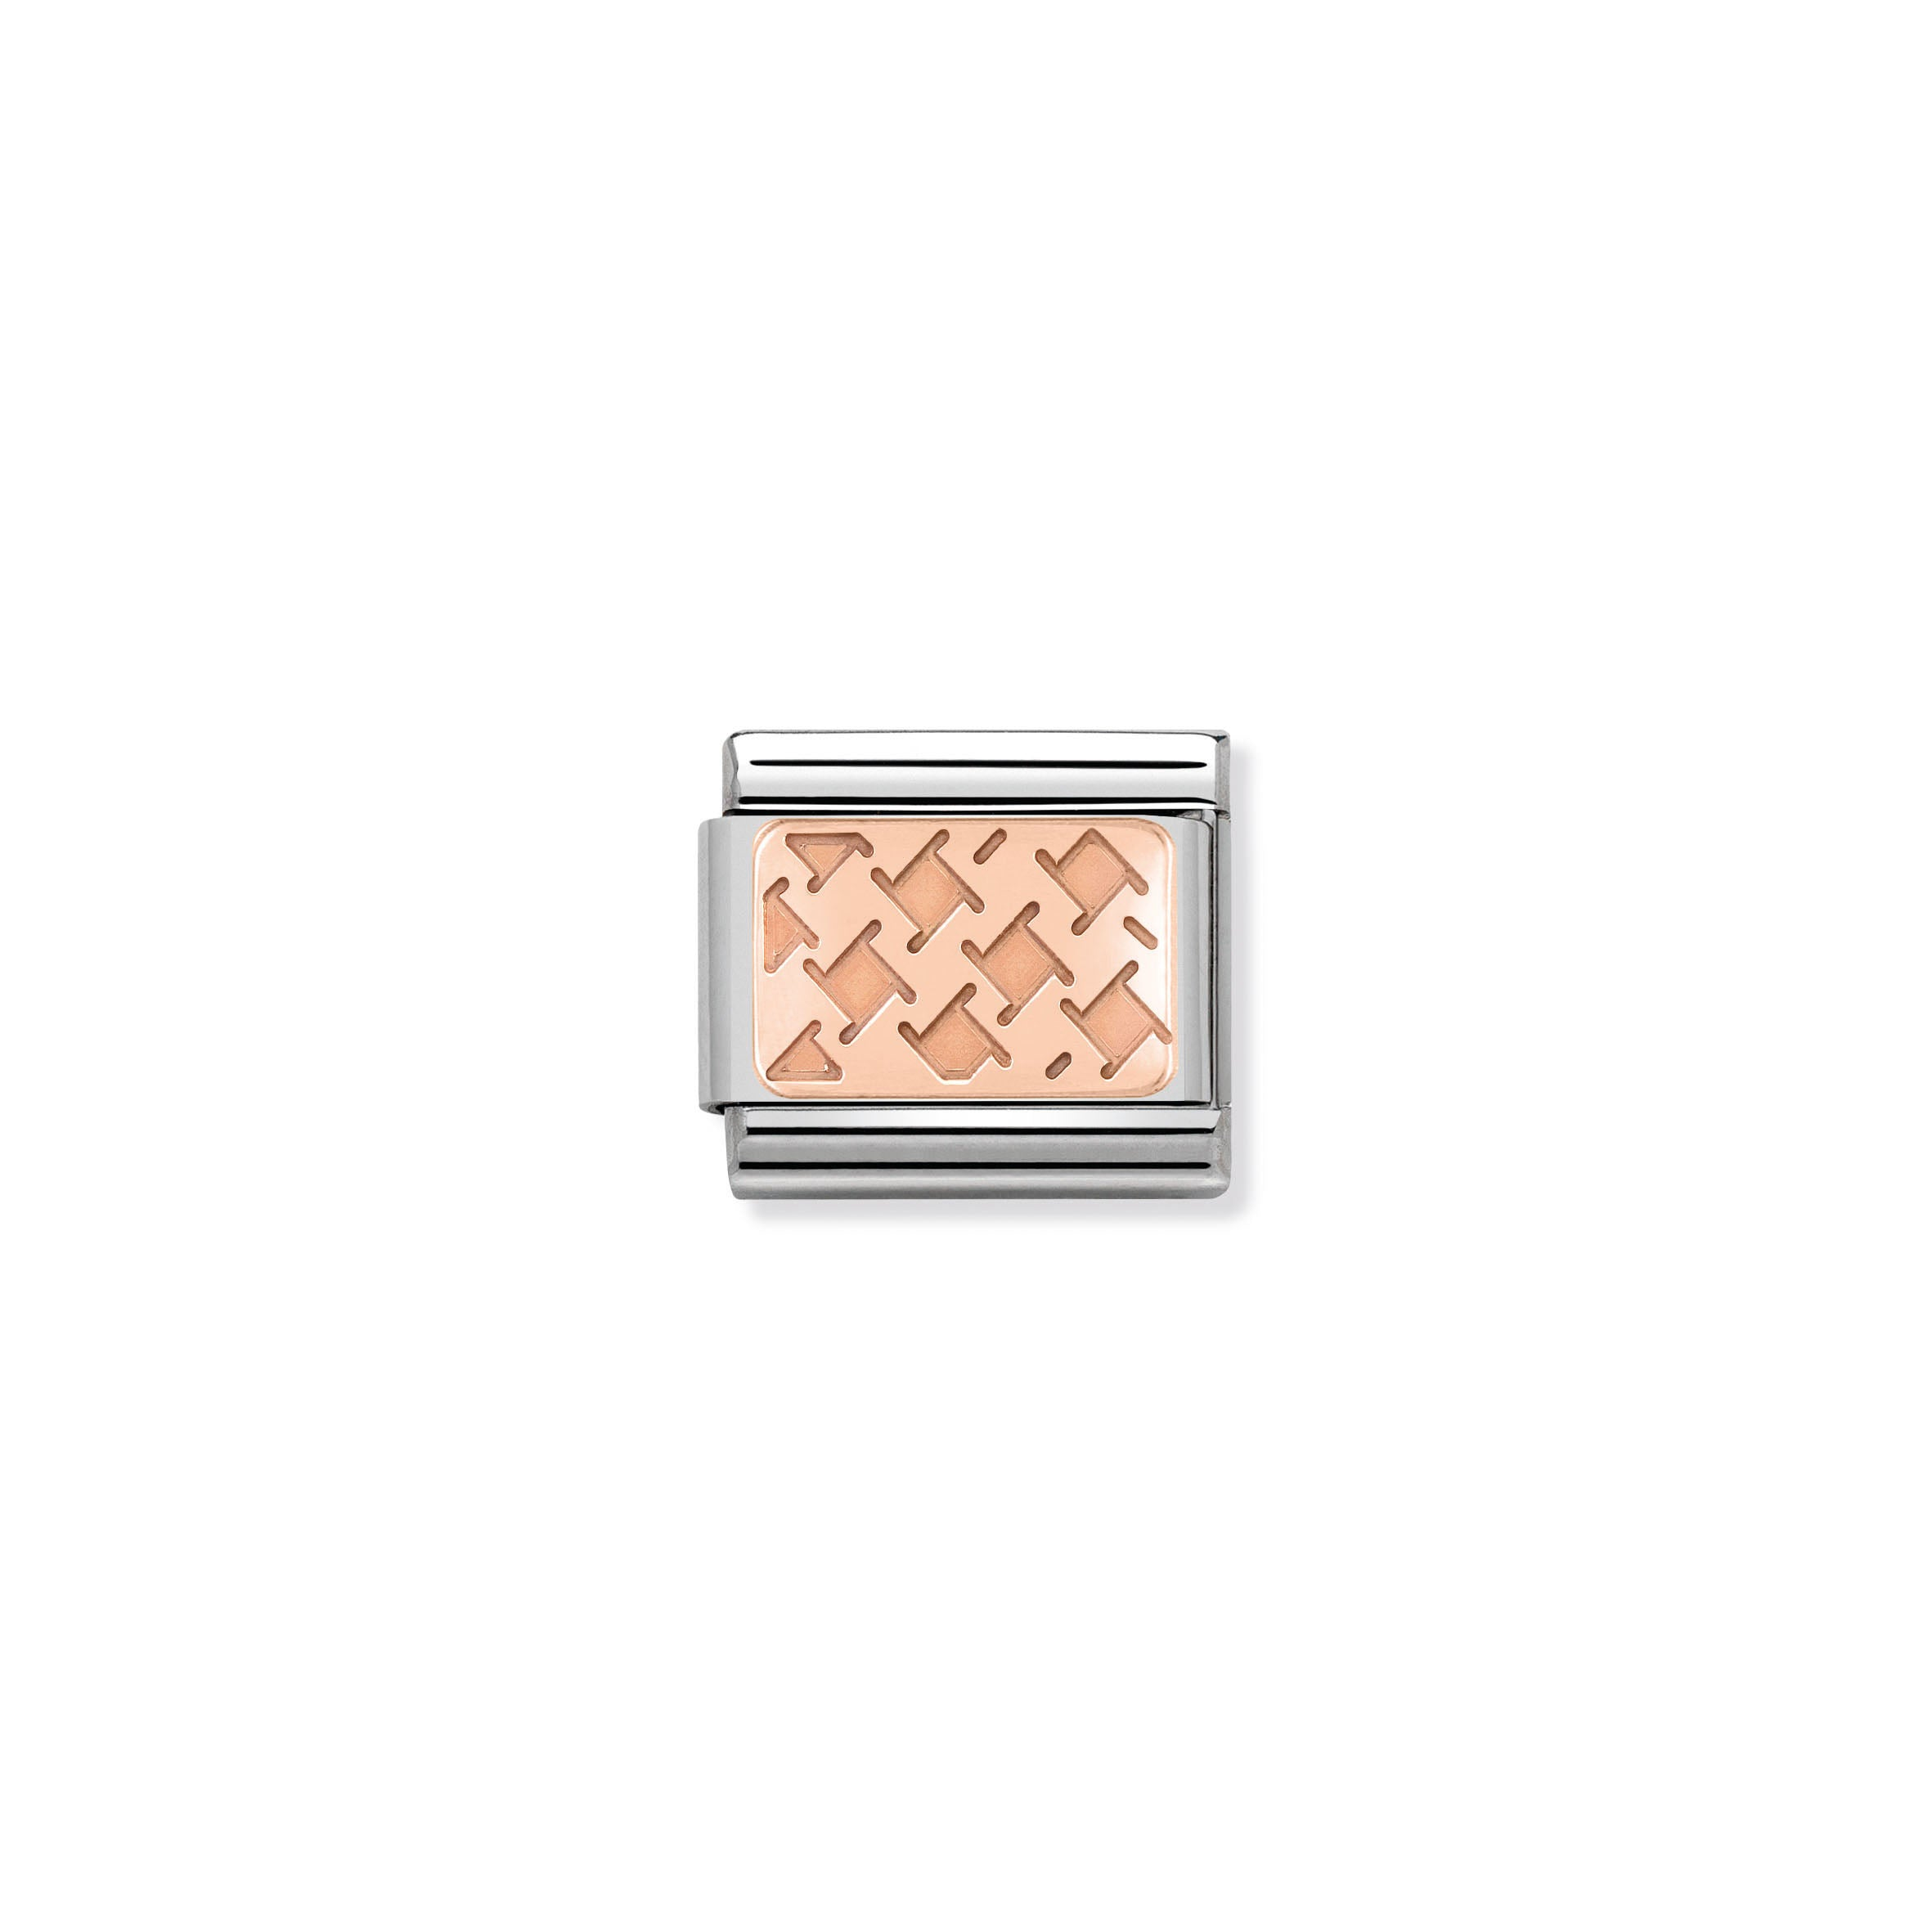 NOMINATION - Composable 430101 04 COMP Classic ROSE GOLD PLATE st/st, 9ct rose gold CUSTOM (Houndstooth)